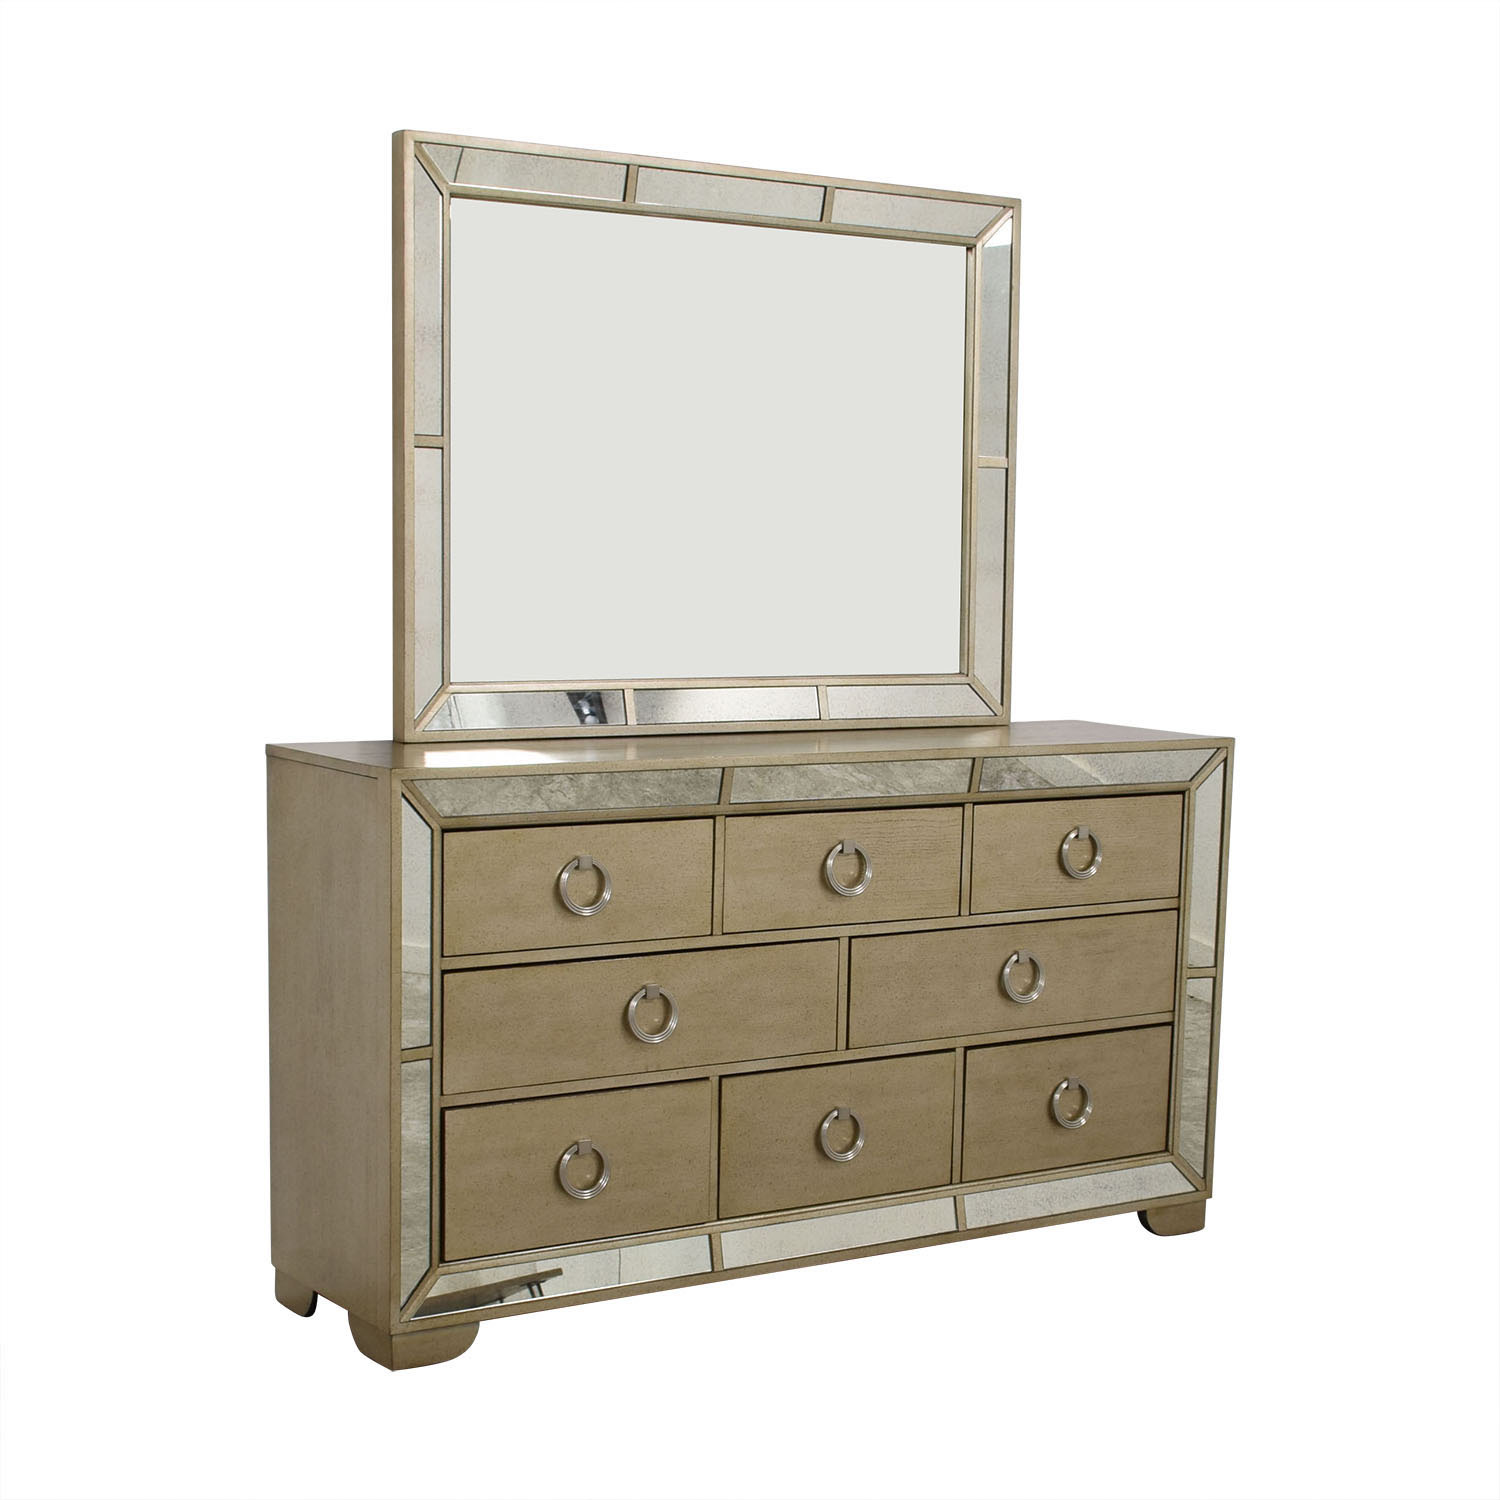 Macy's Ailey Eight-Drawer Dresser with Mirror and Trim sale